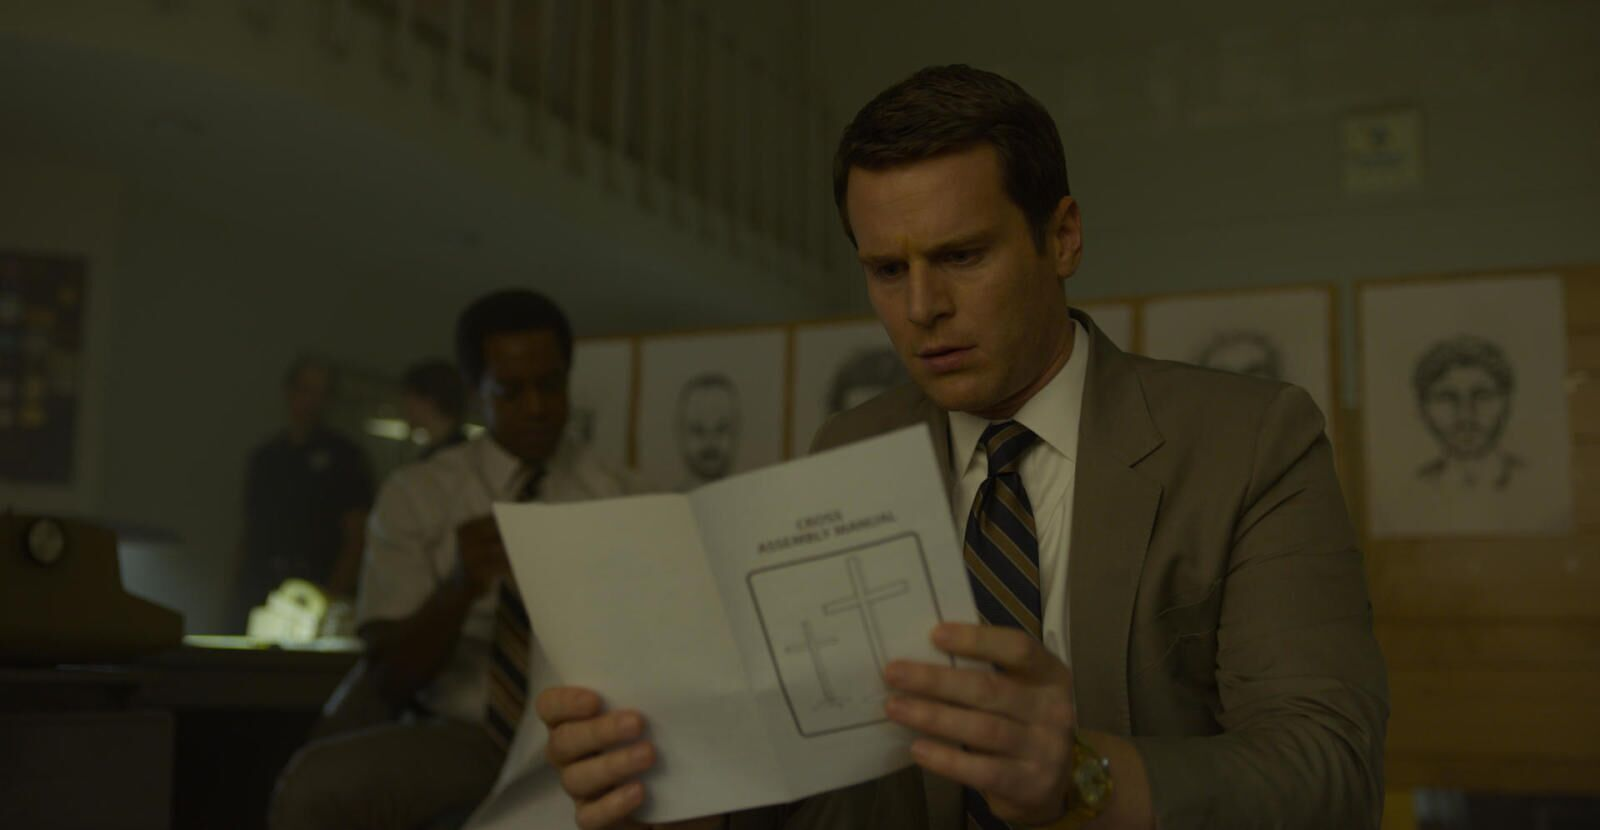 Mindhunter has been placed on an 'indefinite hiatus' after two seasons on Netflix